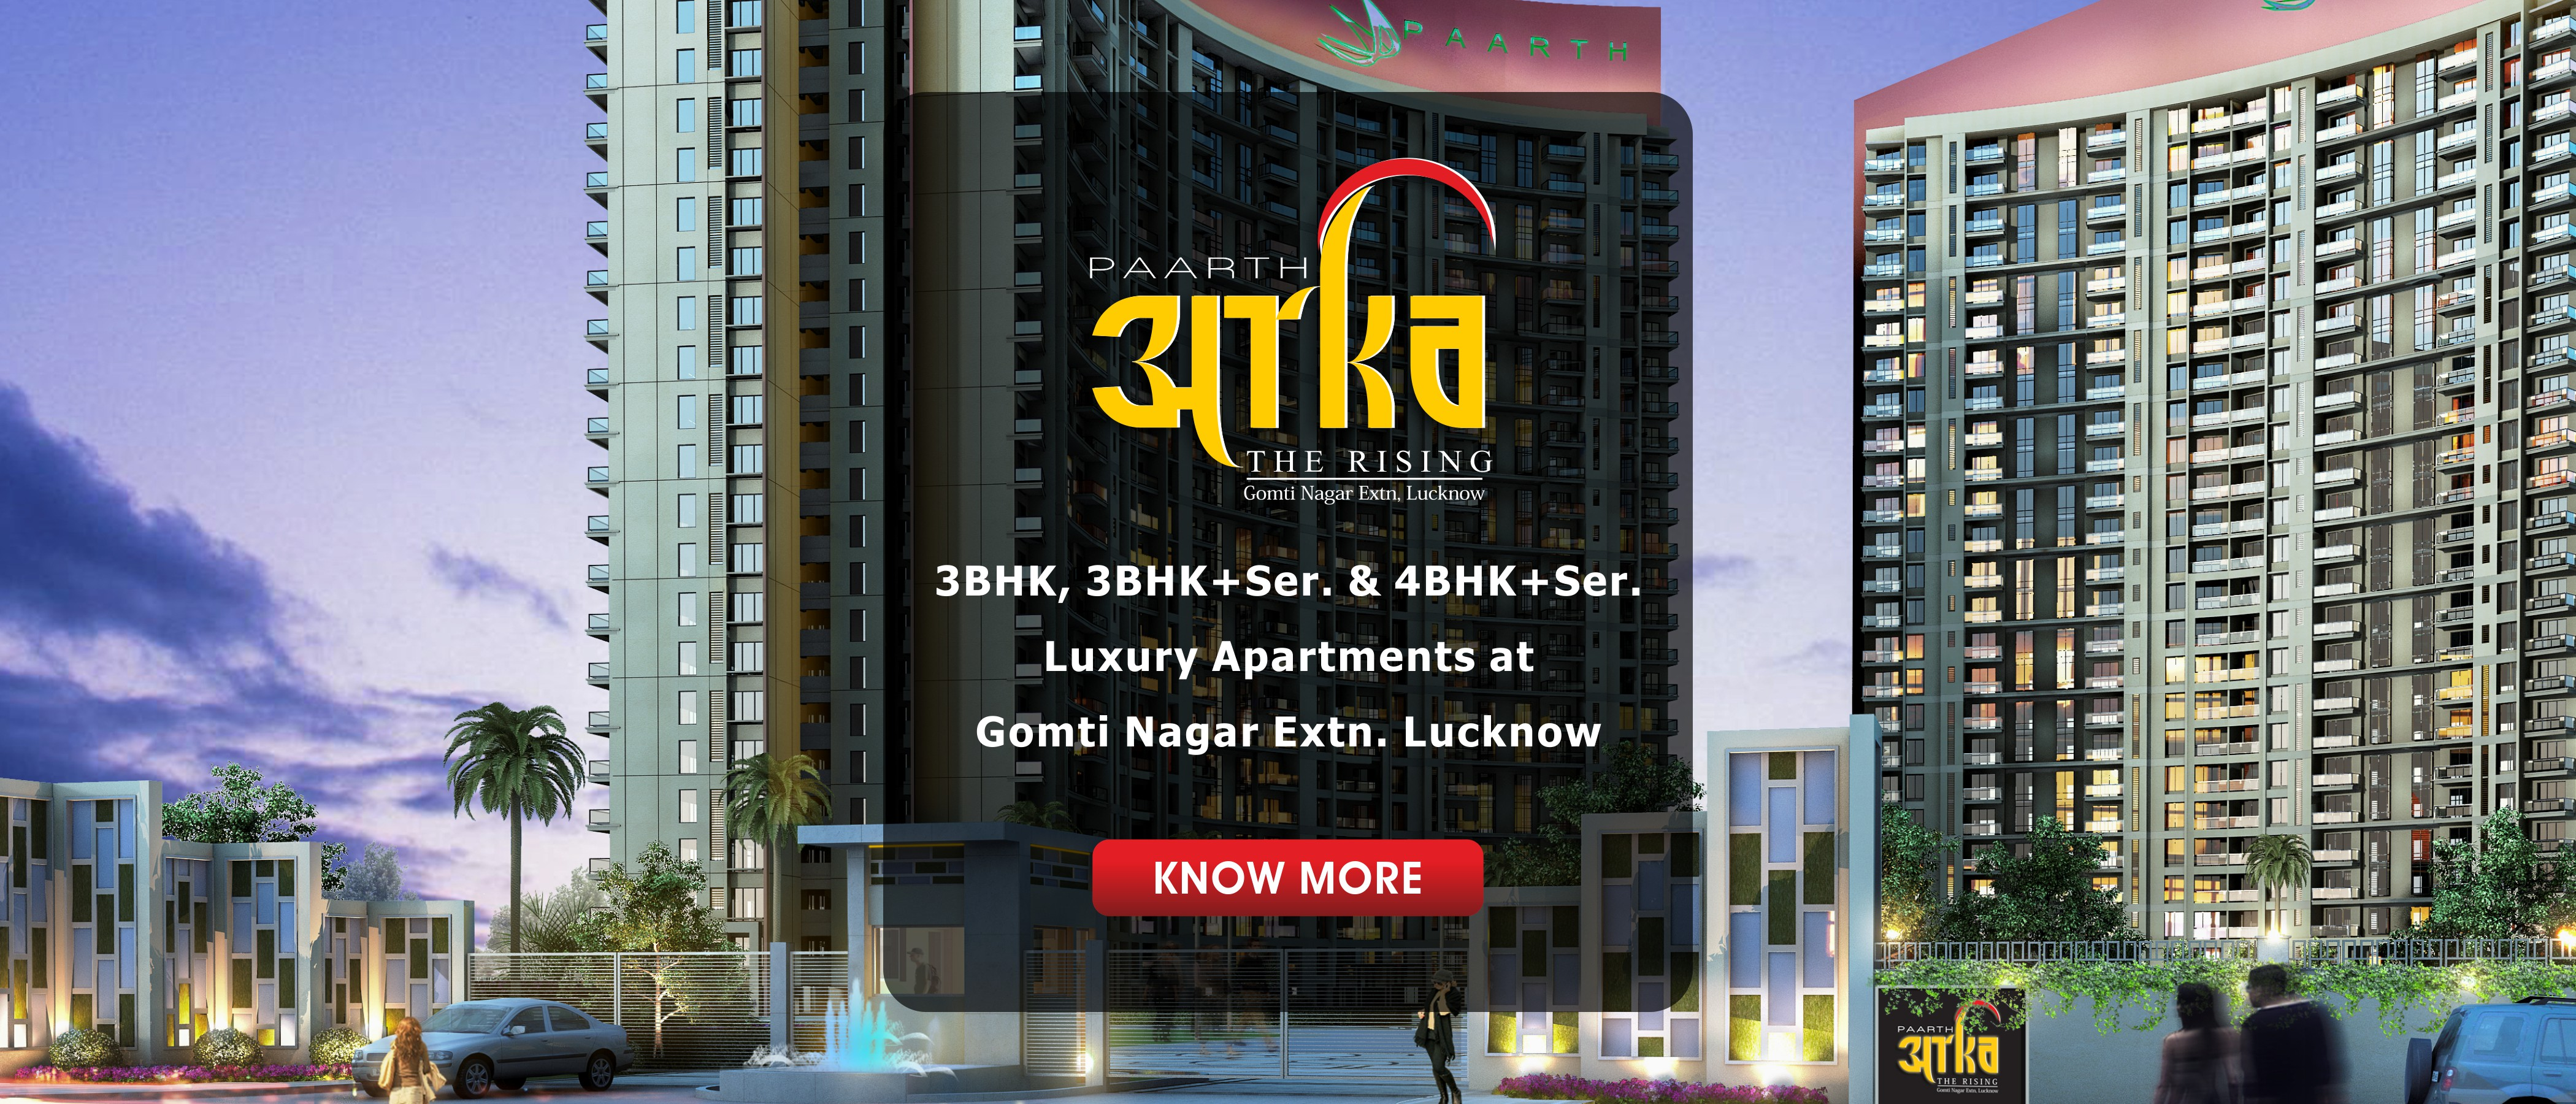 Best Real Estate company offering flats in Gomti Nagar and Kanpur road areas of Lucknow